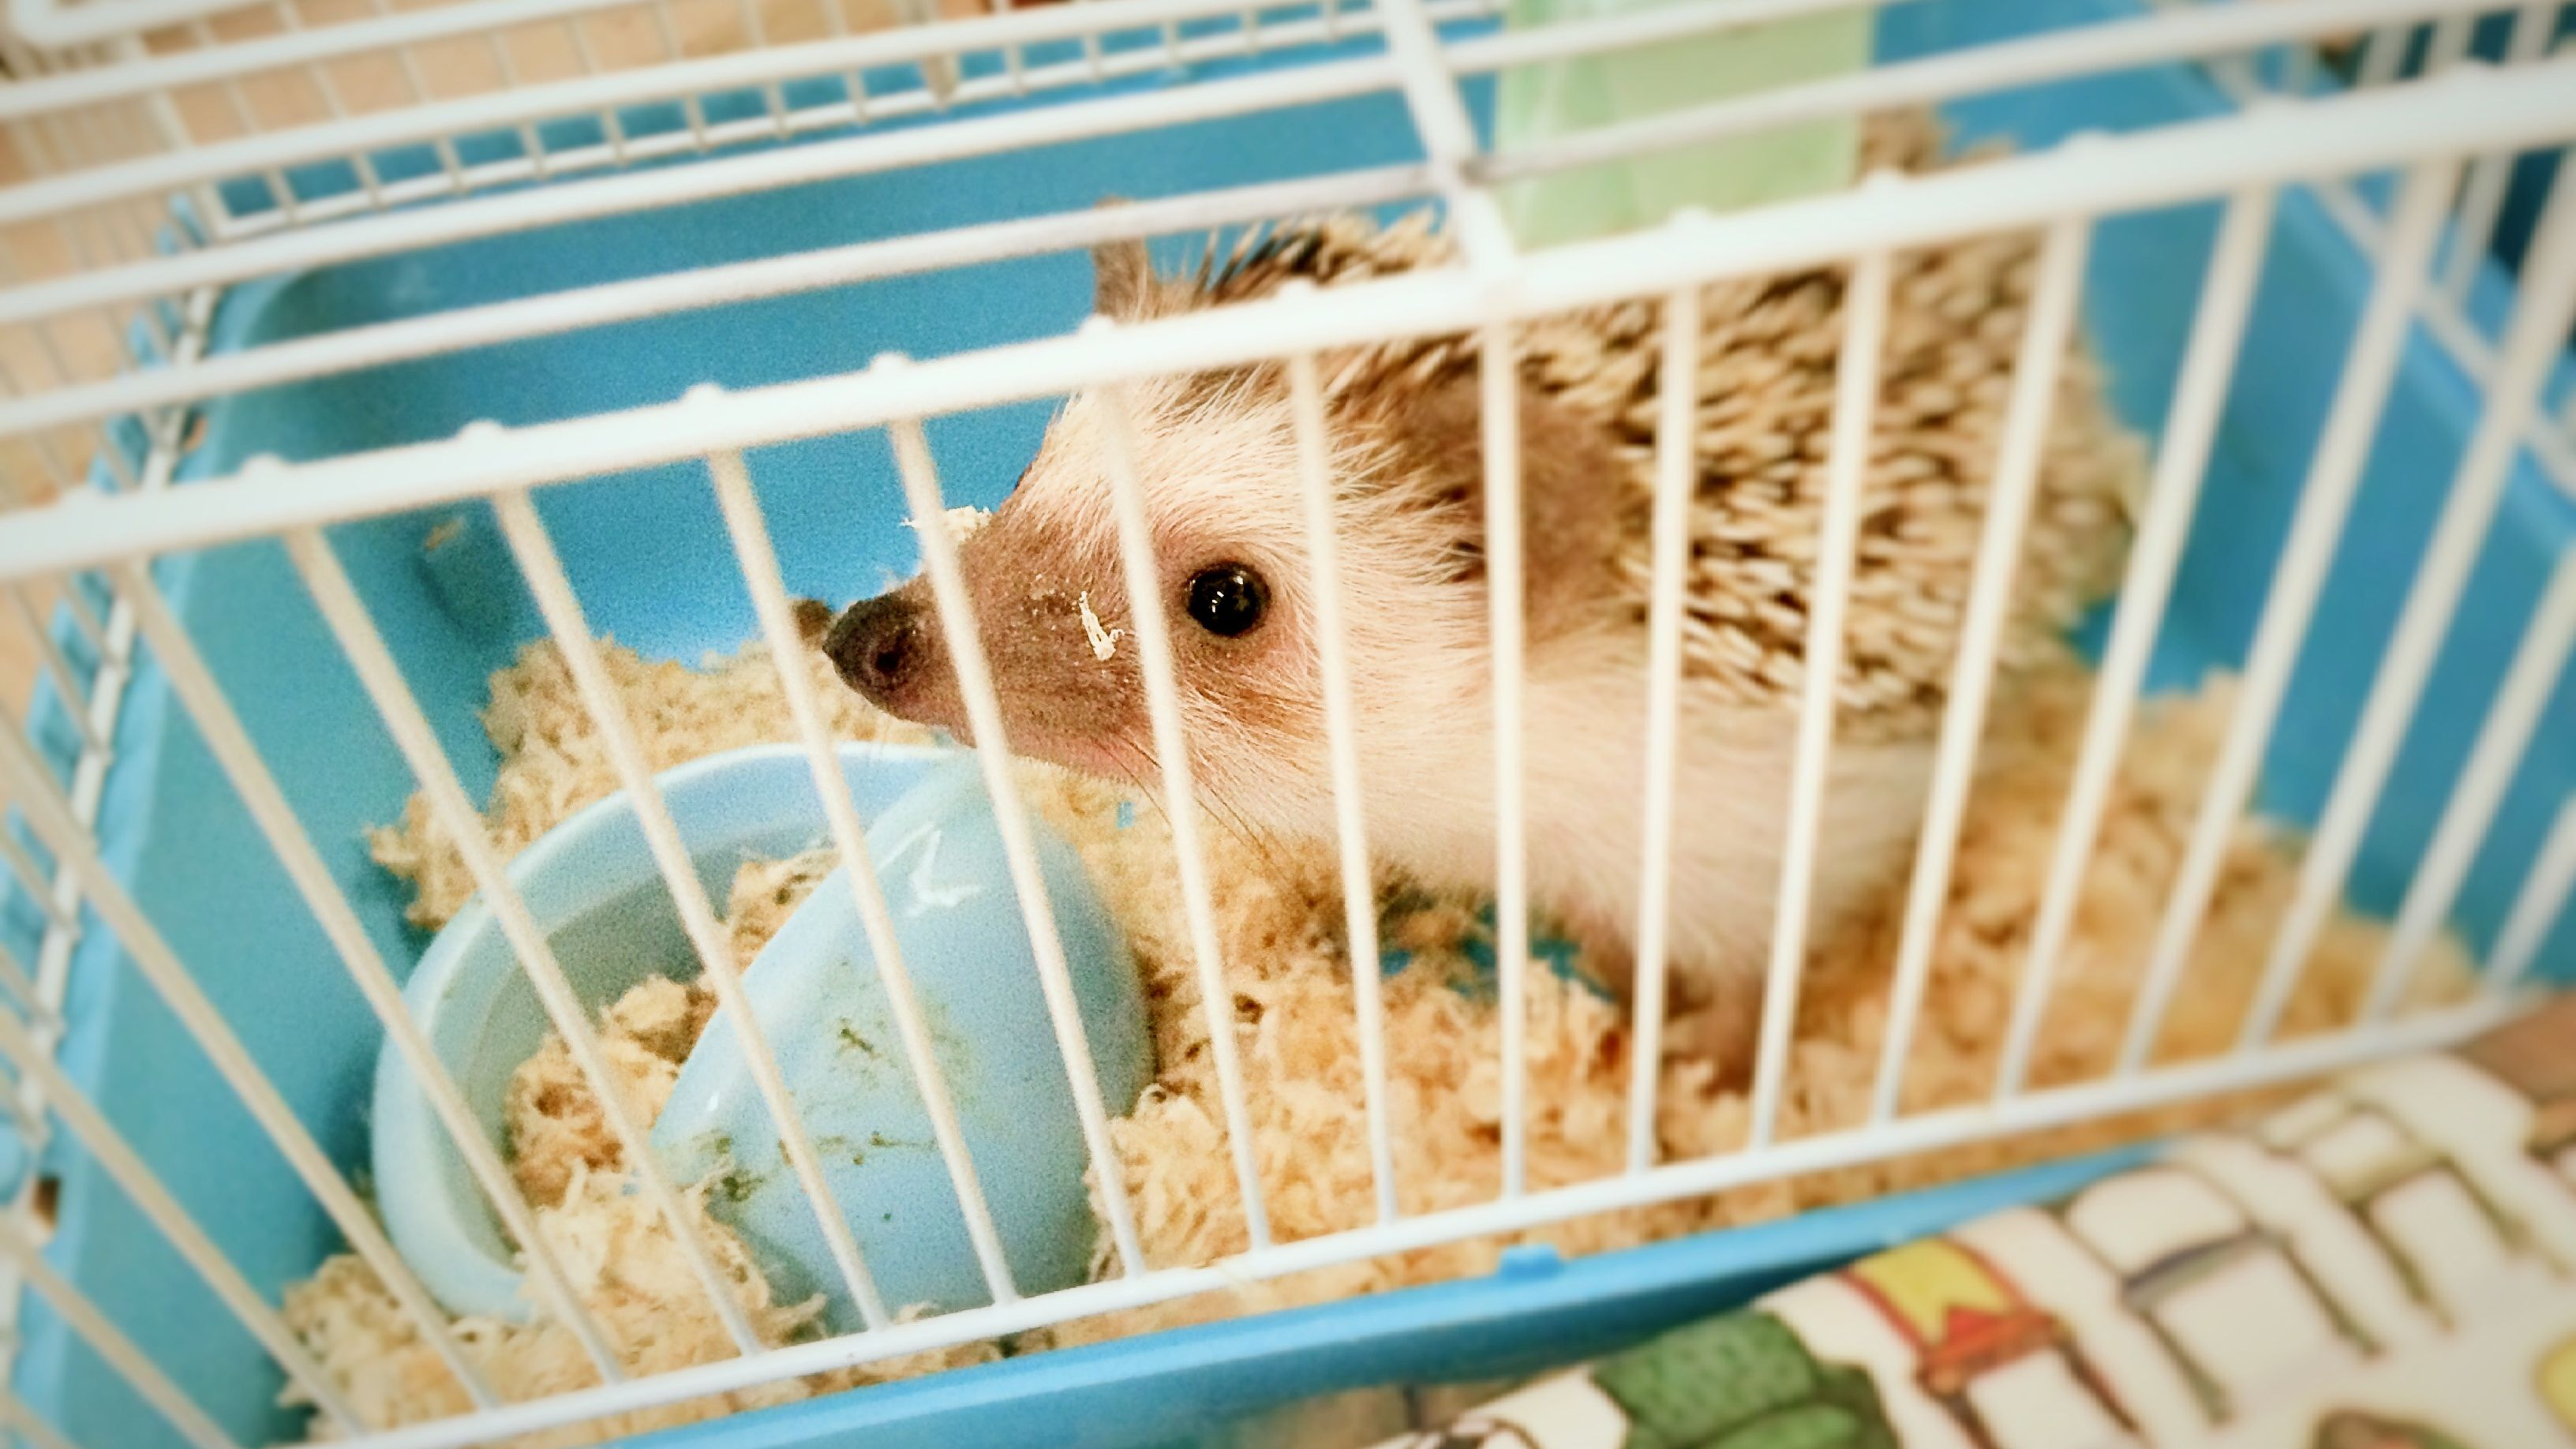 Cages and Other Housing for Pet Hedgehogs